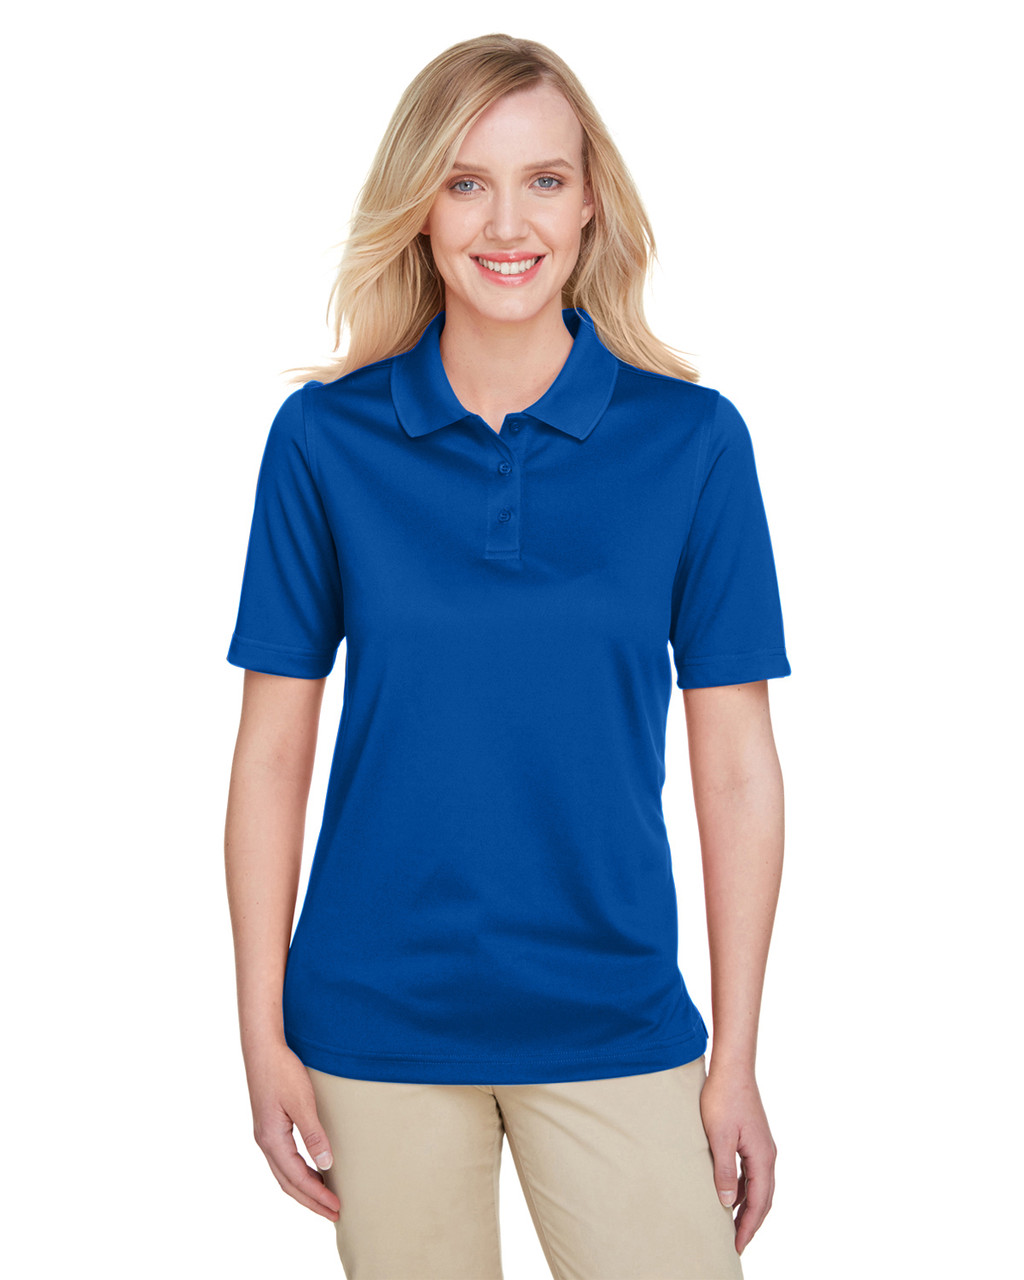 True Royal - M348W Harriton Ladies' Advantage Snag Protection Plus IL Polo Shirt | Blankclothing.ca